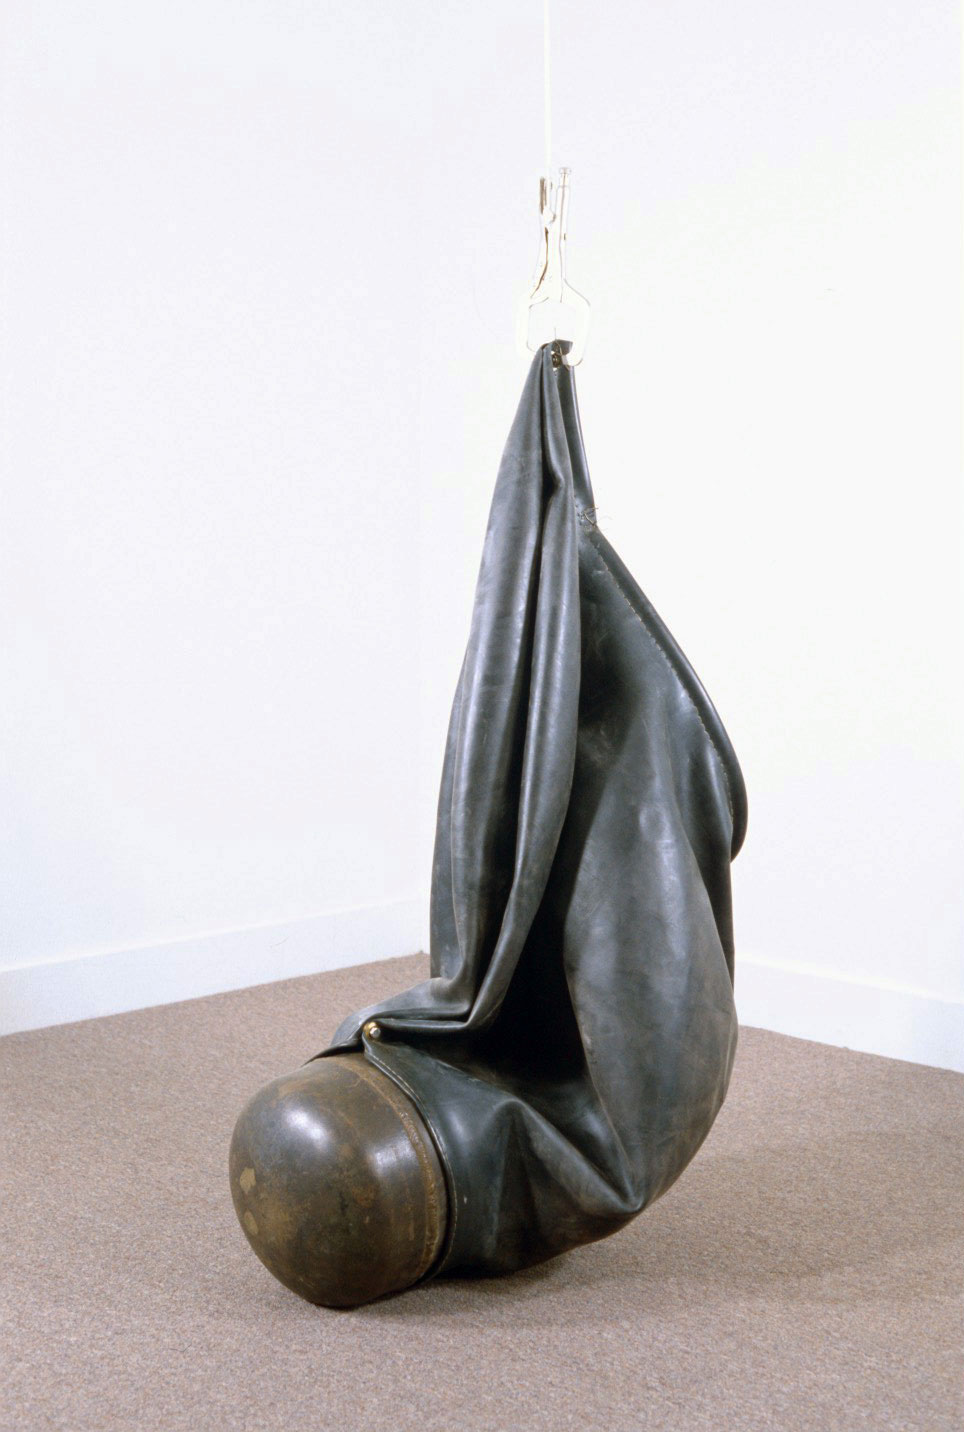 Untitled 95.3   1995  rubber and steel  48 X 27 X 32""